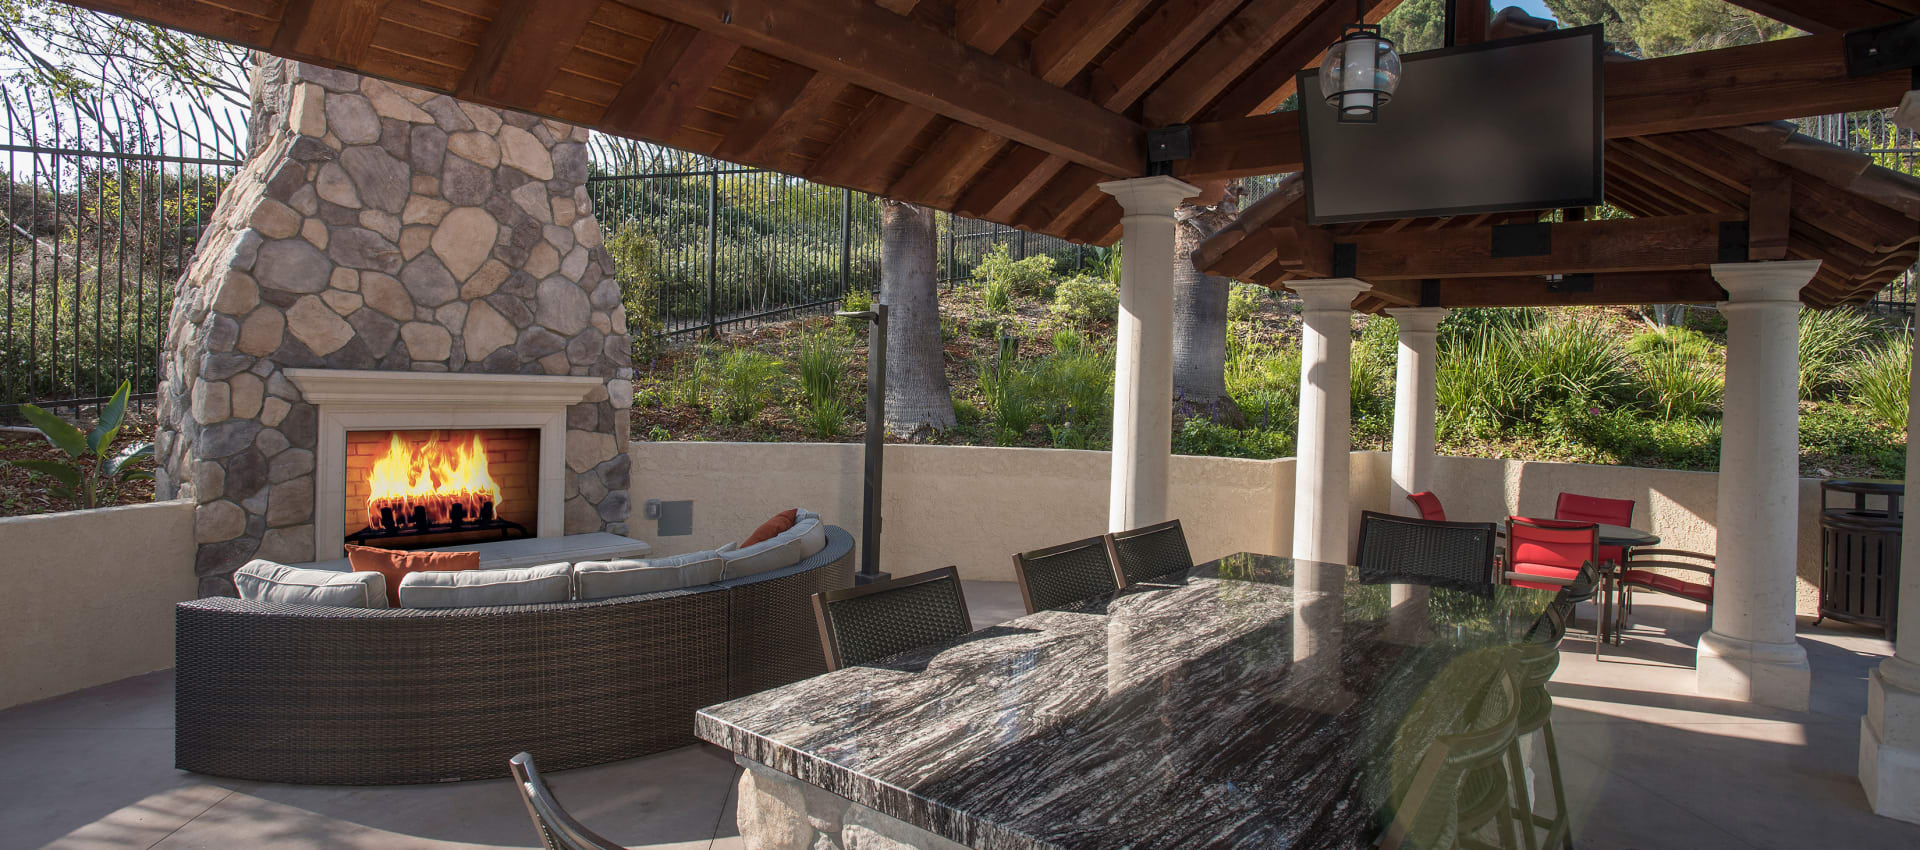 Outdoor fireplace at Shadow Ridge Apartment Homes in Simi Valley, California